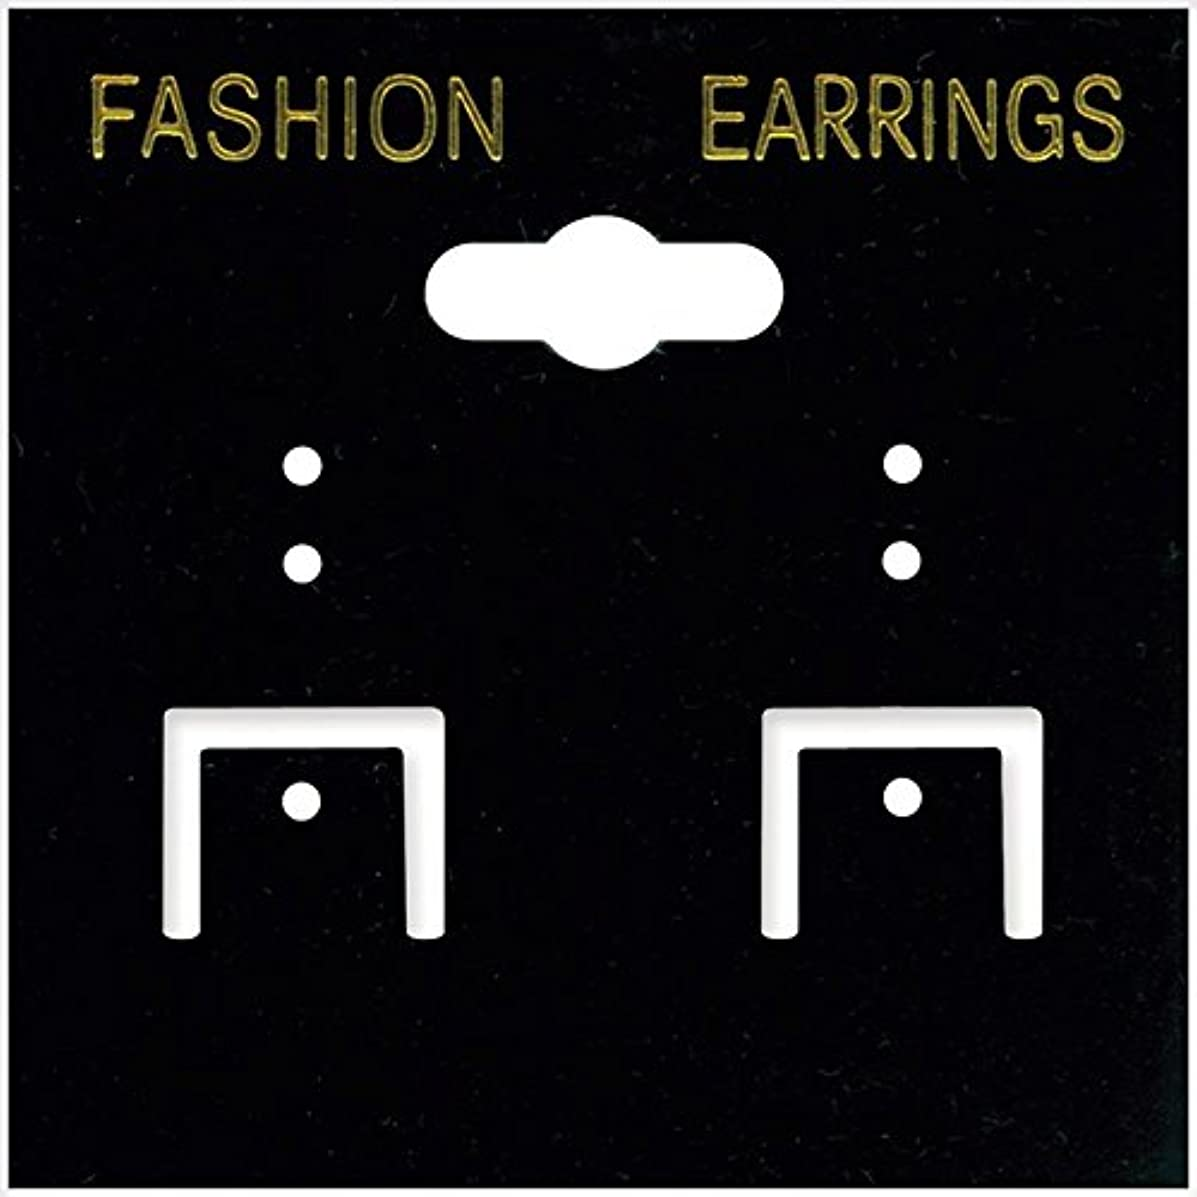 Darice Earring Cards, 2 by 2-Inch, PVC Black, 100/Pack